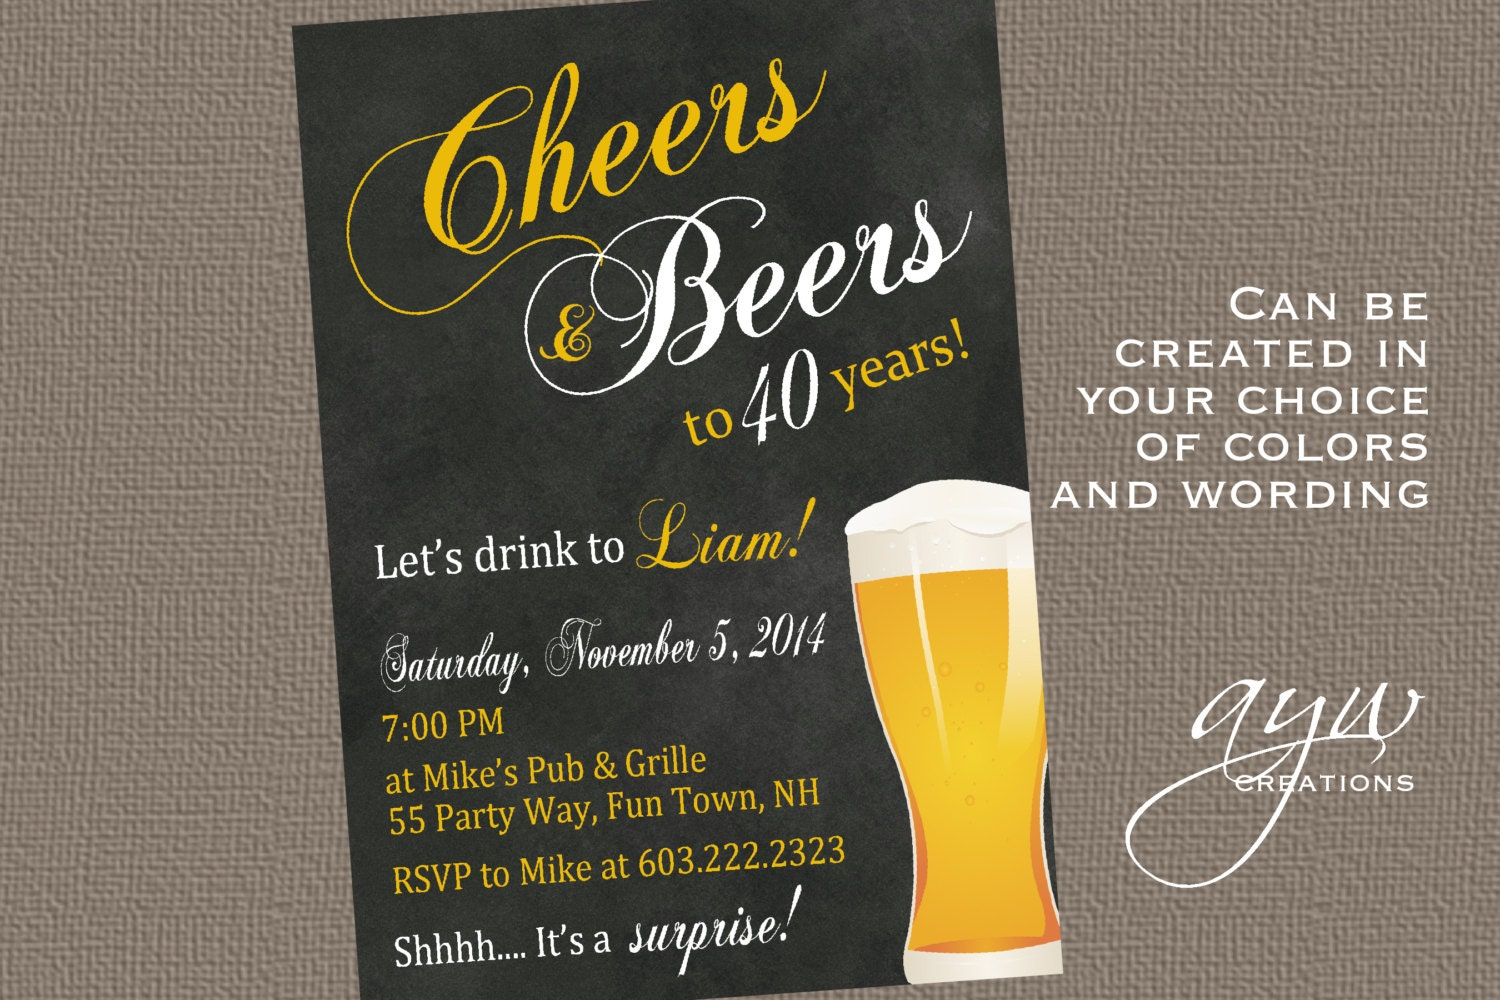 40th Birthday Party Invitations Cheers and Beers Birthday